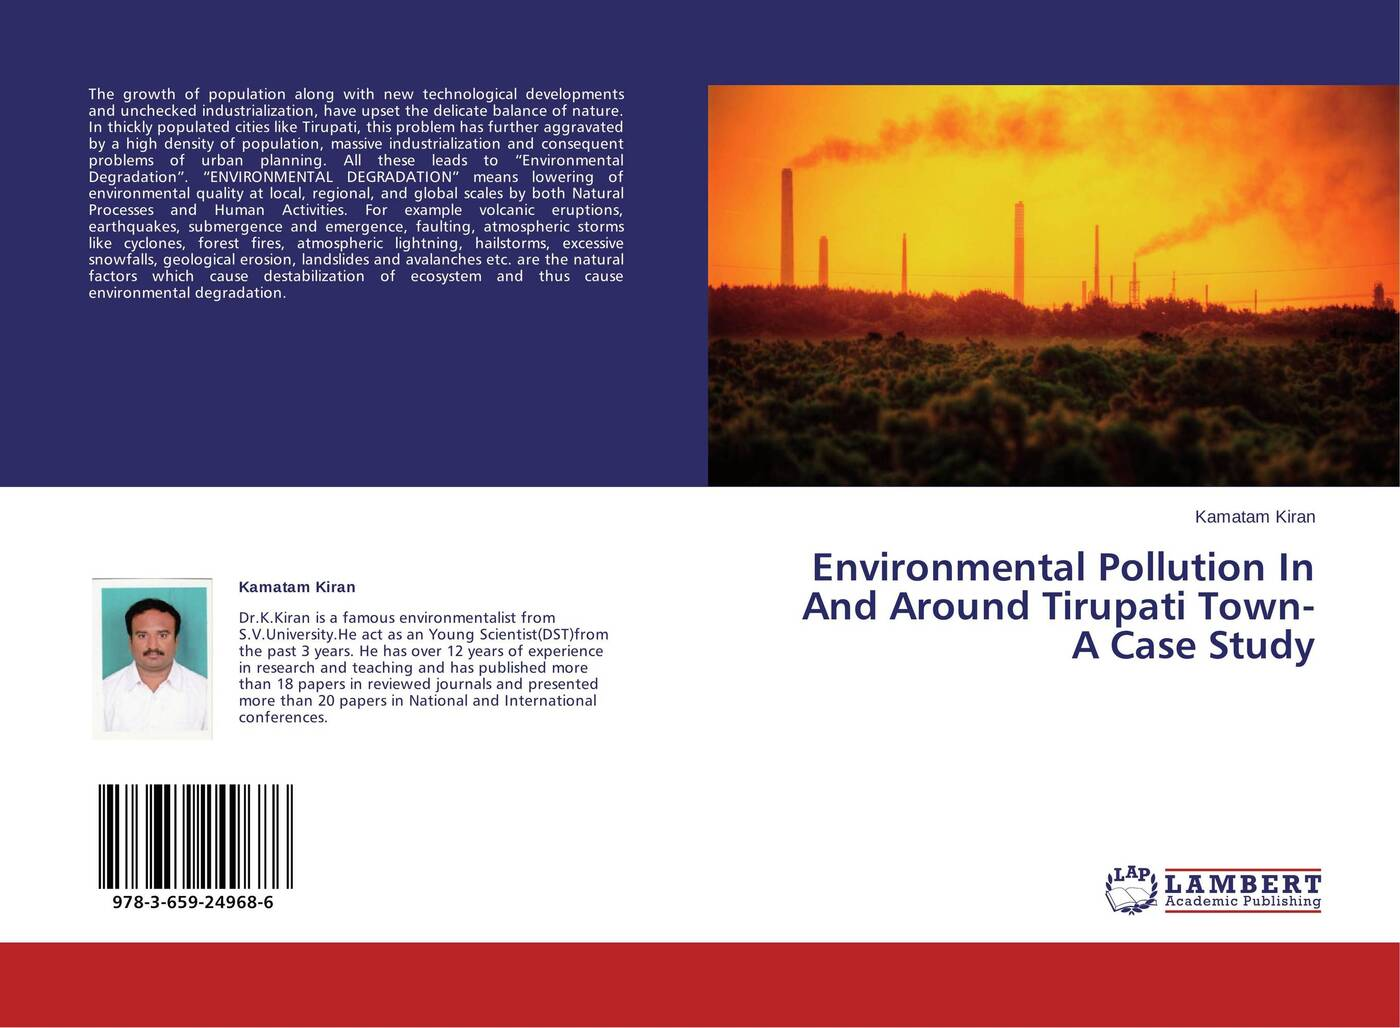 Kamatam Kiran Environmental Pollution In And Around Tirupati Town- A Case Study gary grant ecosystem services come to town greening cities by working with nature